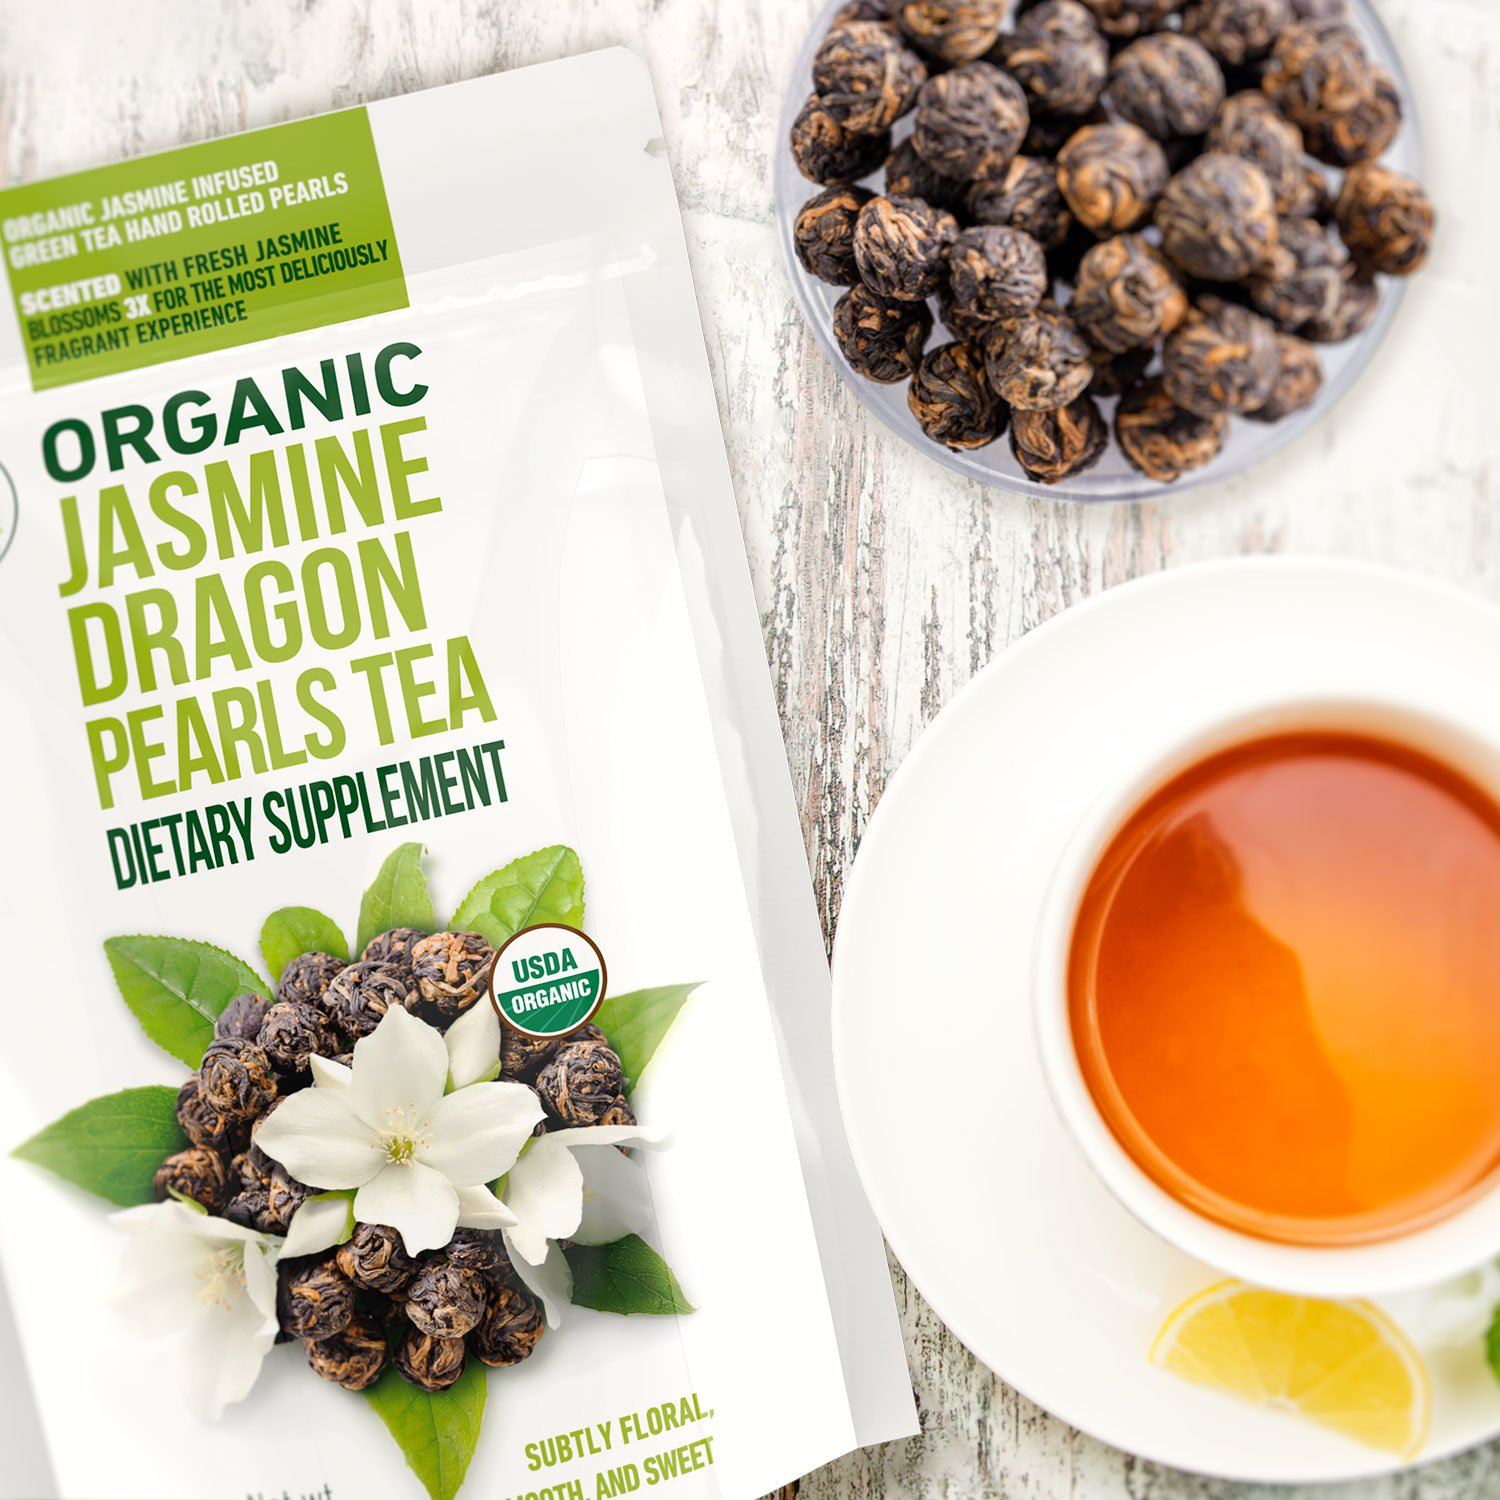 Kiss Me Organics LLC Introduces New, Exclusive Jasmine Dragon Pearls Tea